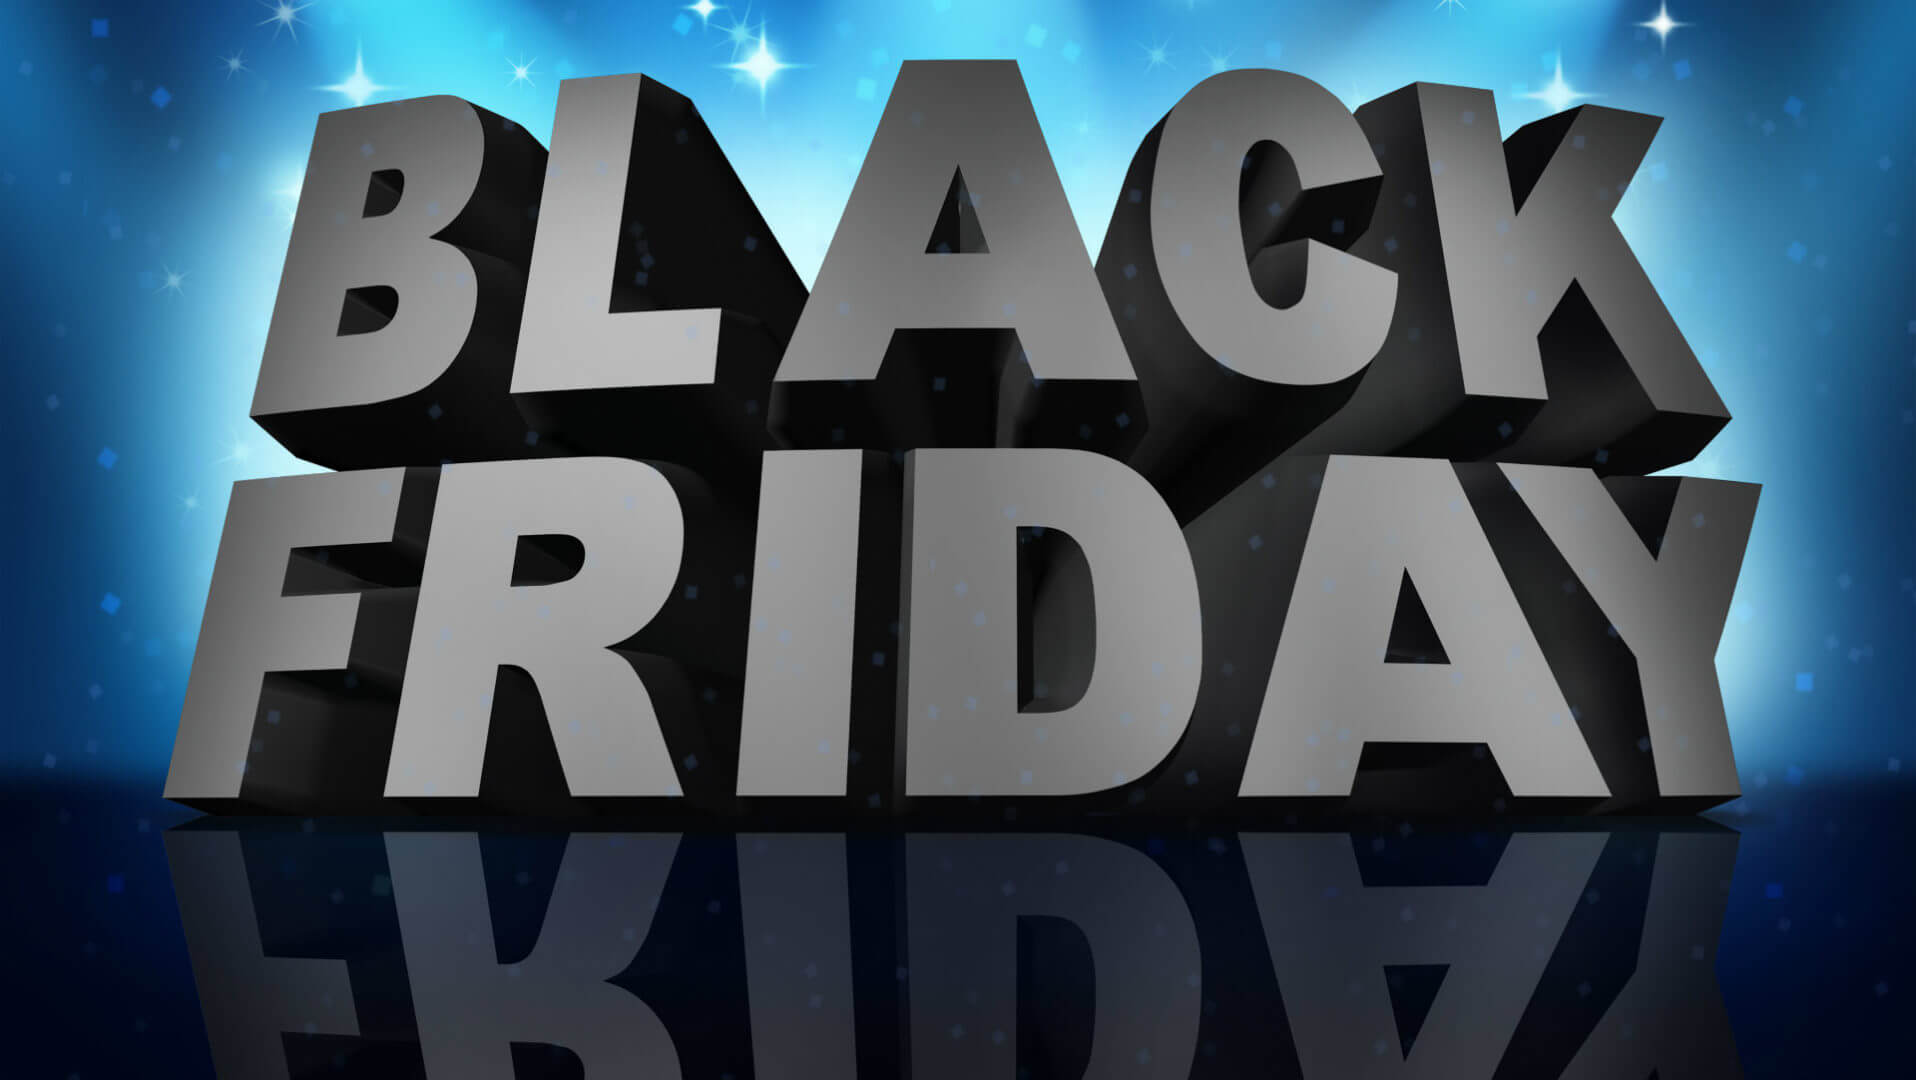 Free Download Black Friday Png Images image #33133